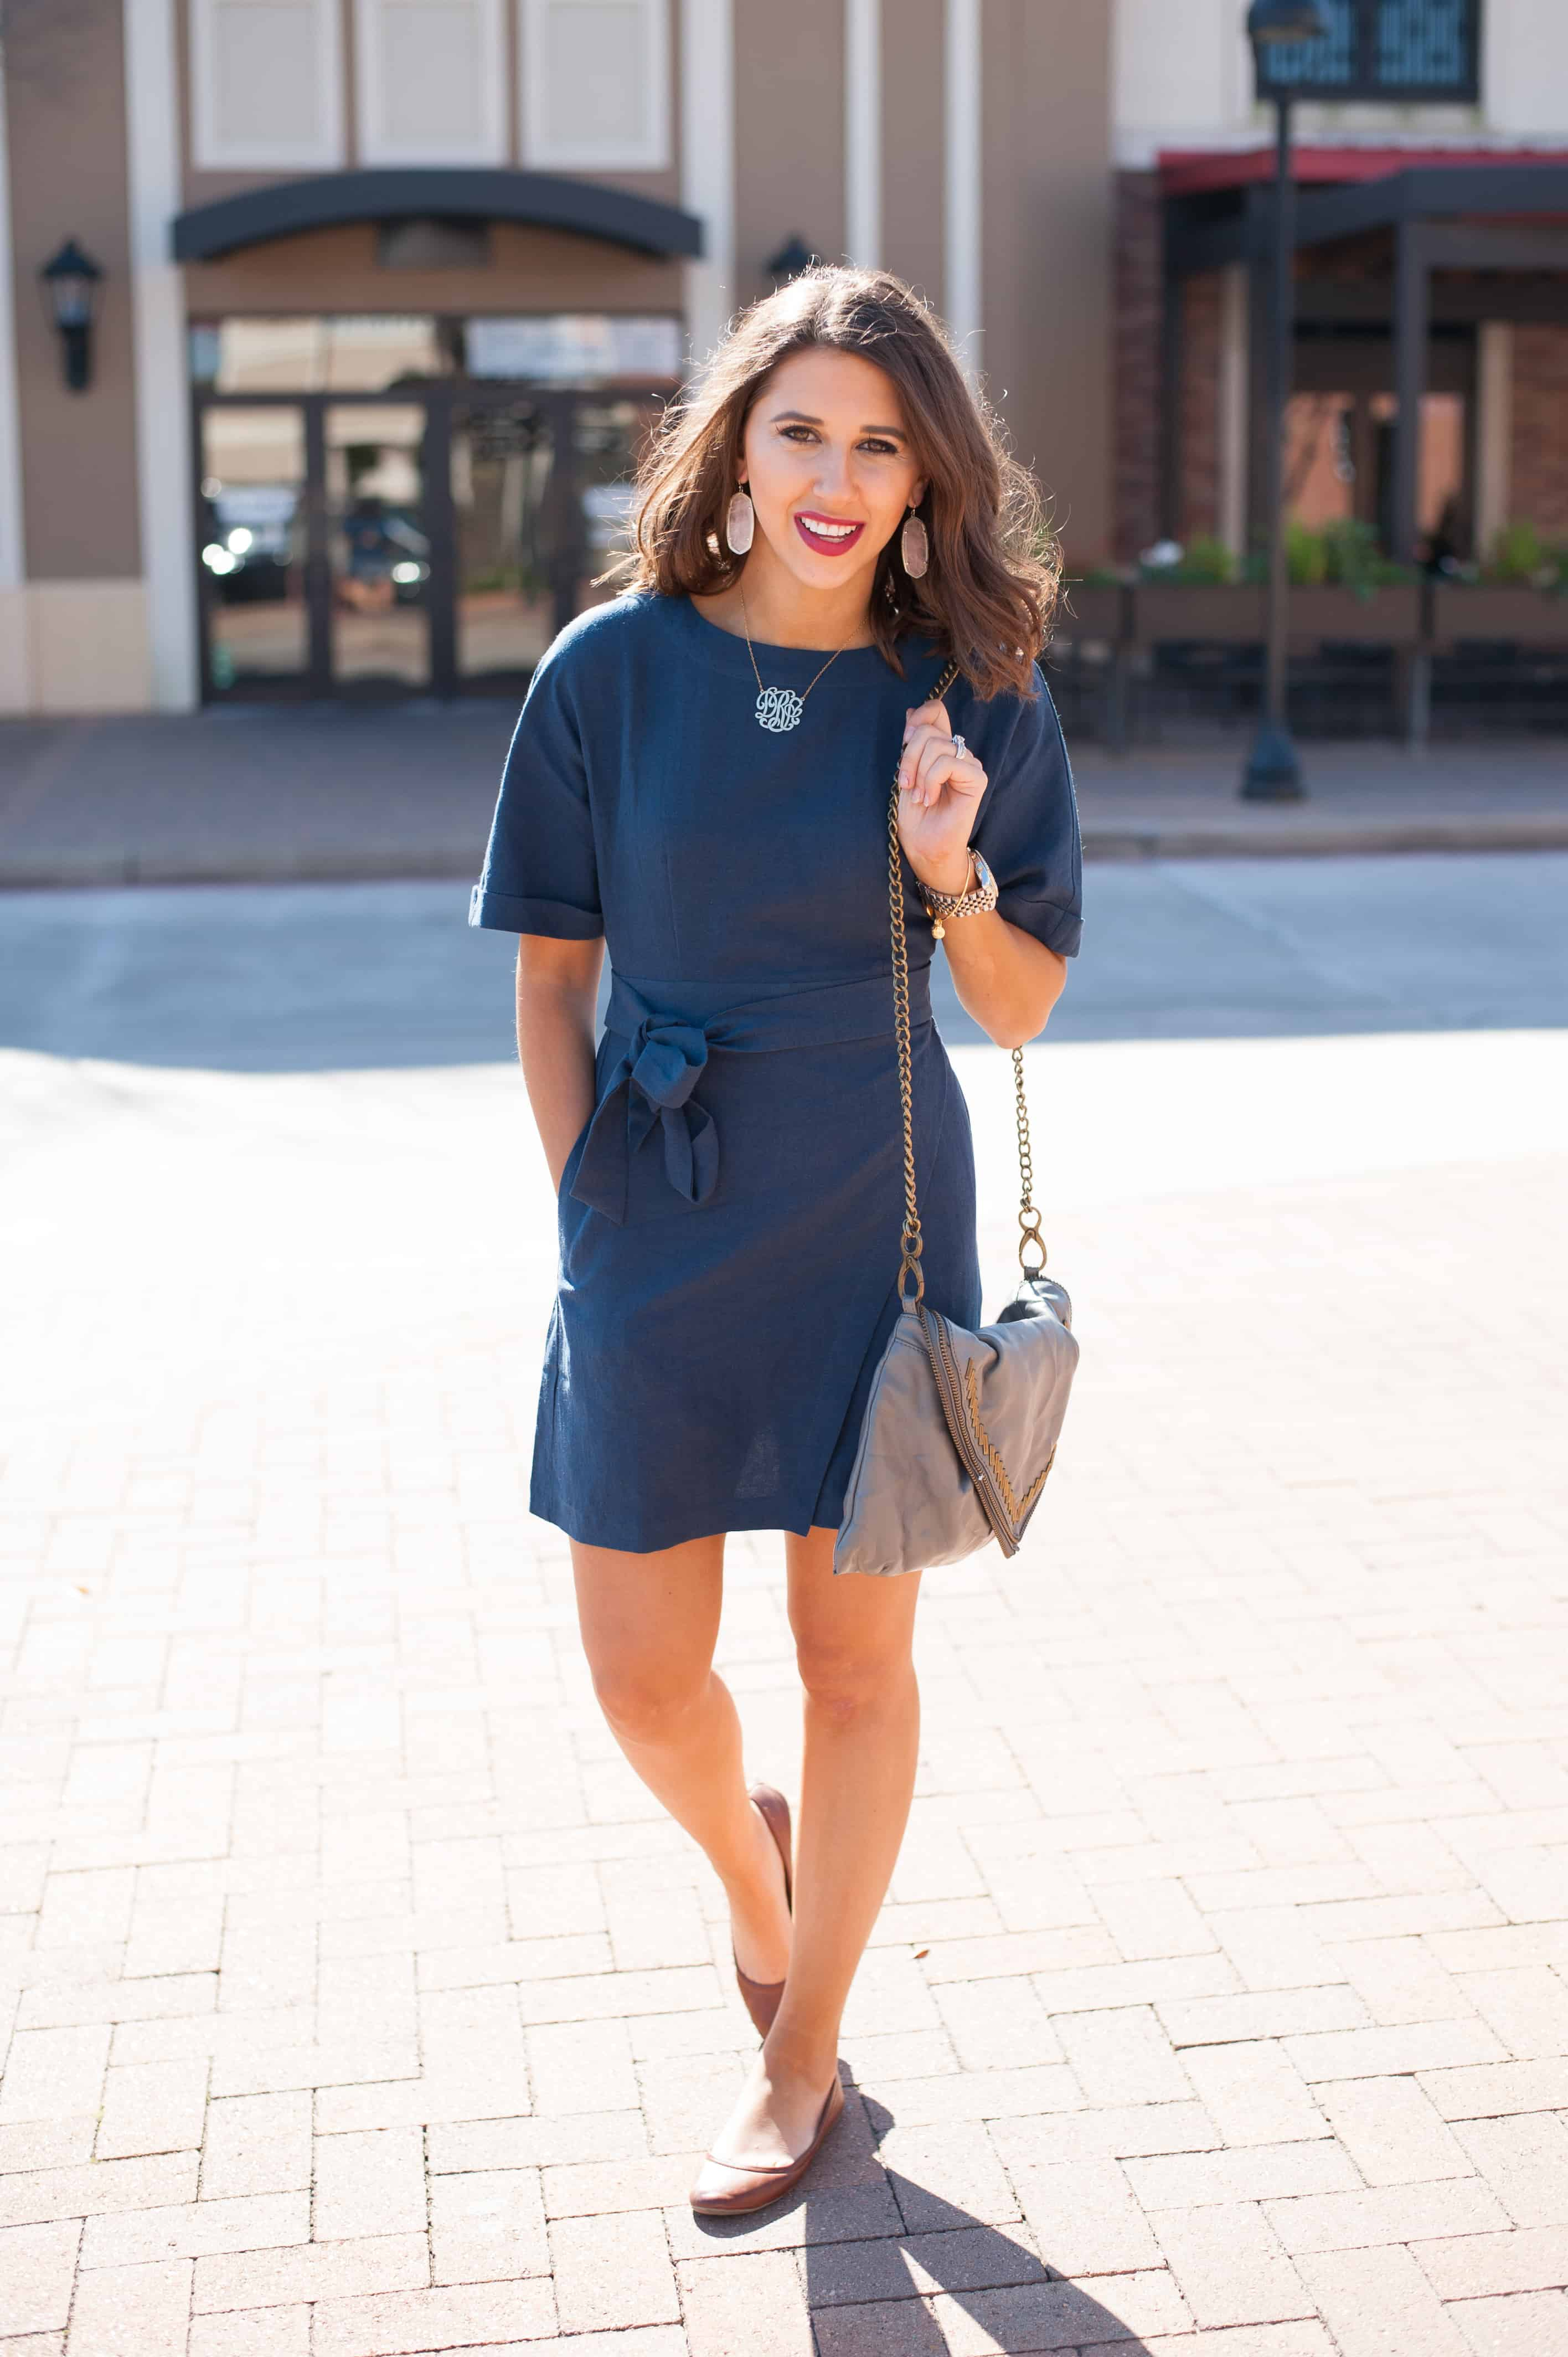 dress_up_buttercup_dede_raad_fashion_blogger_houston (5 of 15)